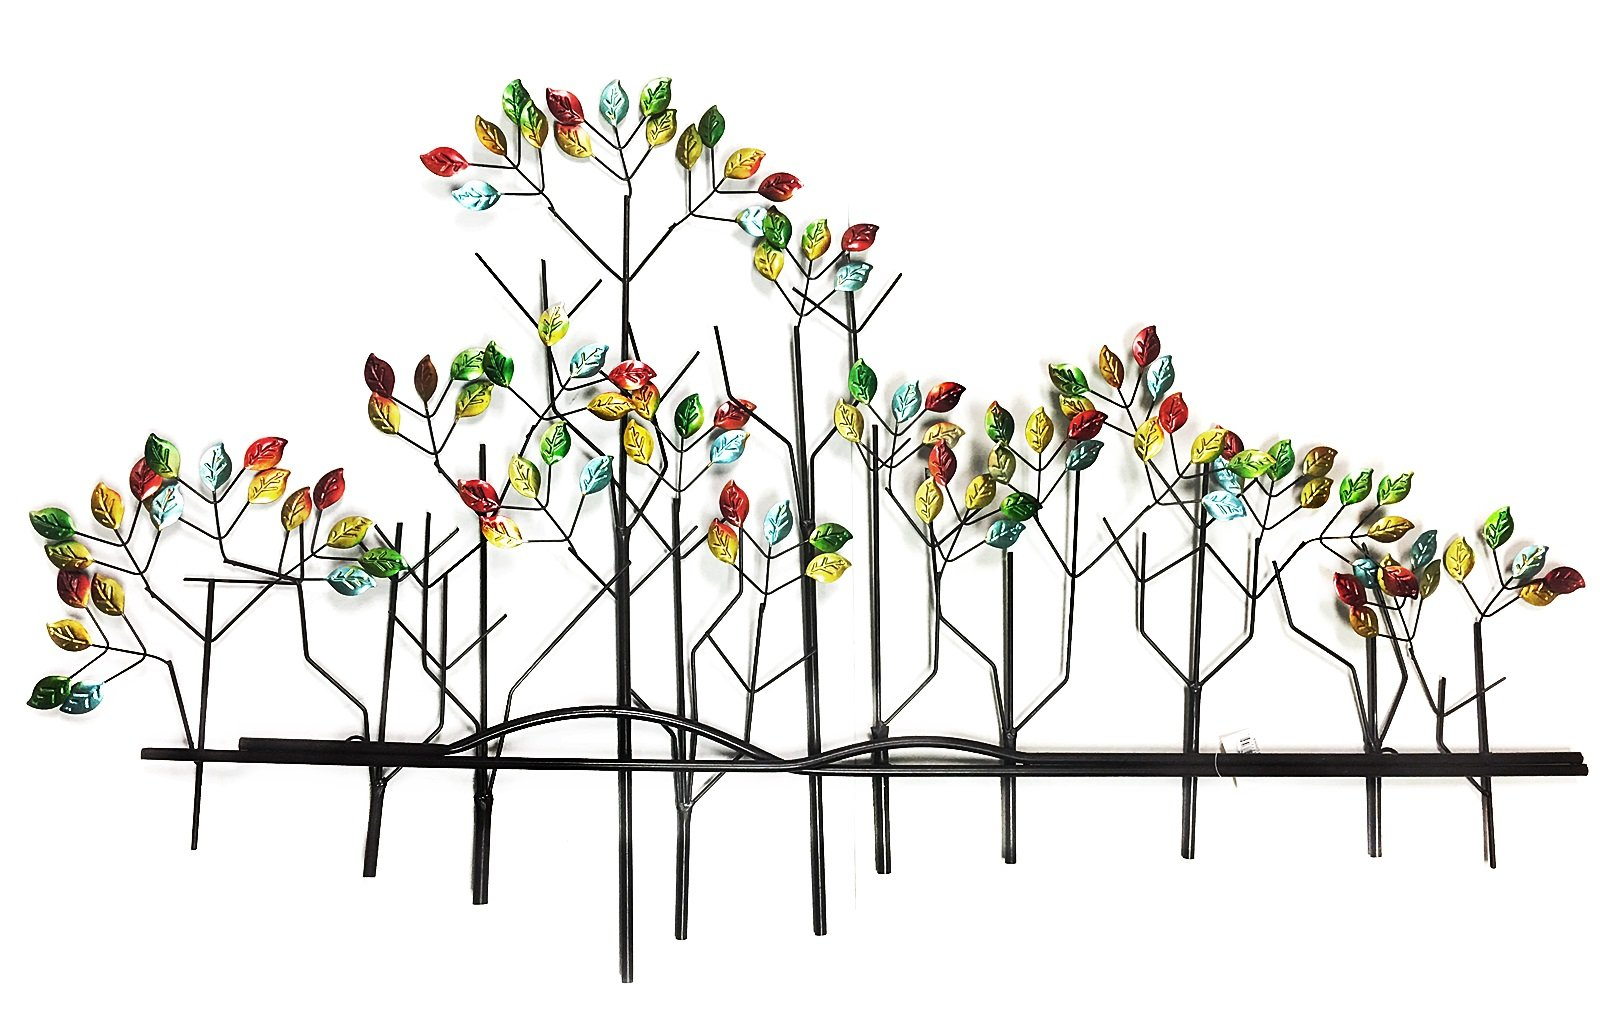 "Fullsexy 1 Wall Art Tree, 39"" w,24"" h, Multicolor - Tree of life metal wall art 39""w inch x 24 inch Easy on wall tree made from high quality light weight thin metal Artistic shape adds modern and elegant flair to any decor abstract art - living-room-decor, living-room, home-decor - 71BmPKoNMsL -"